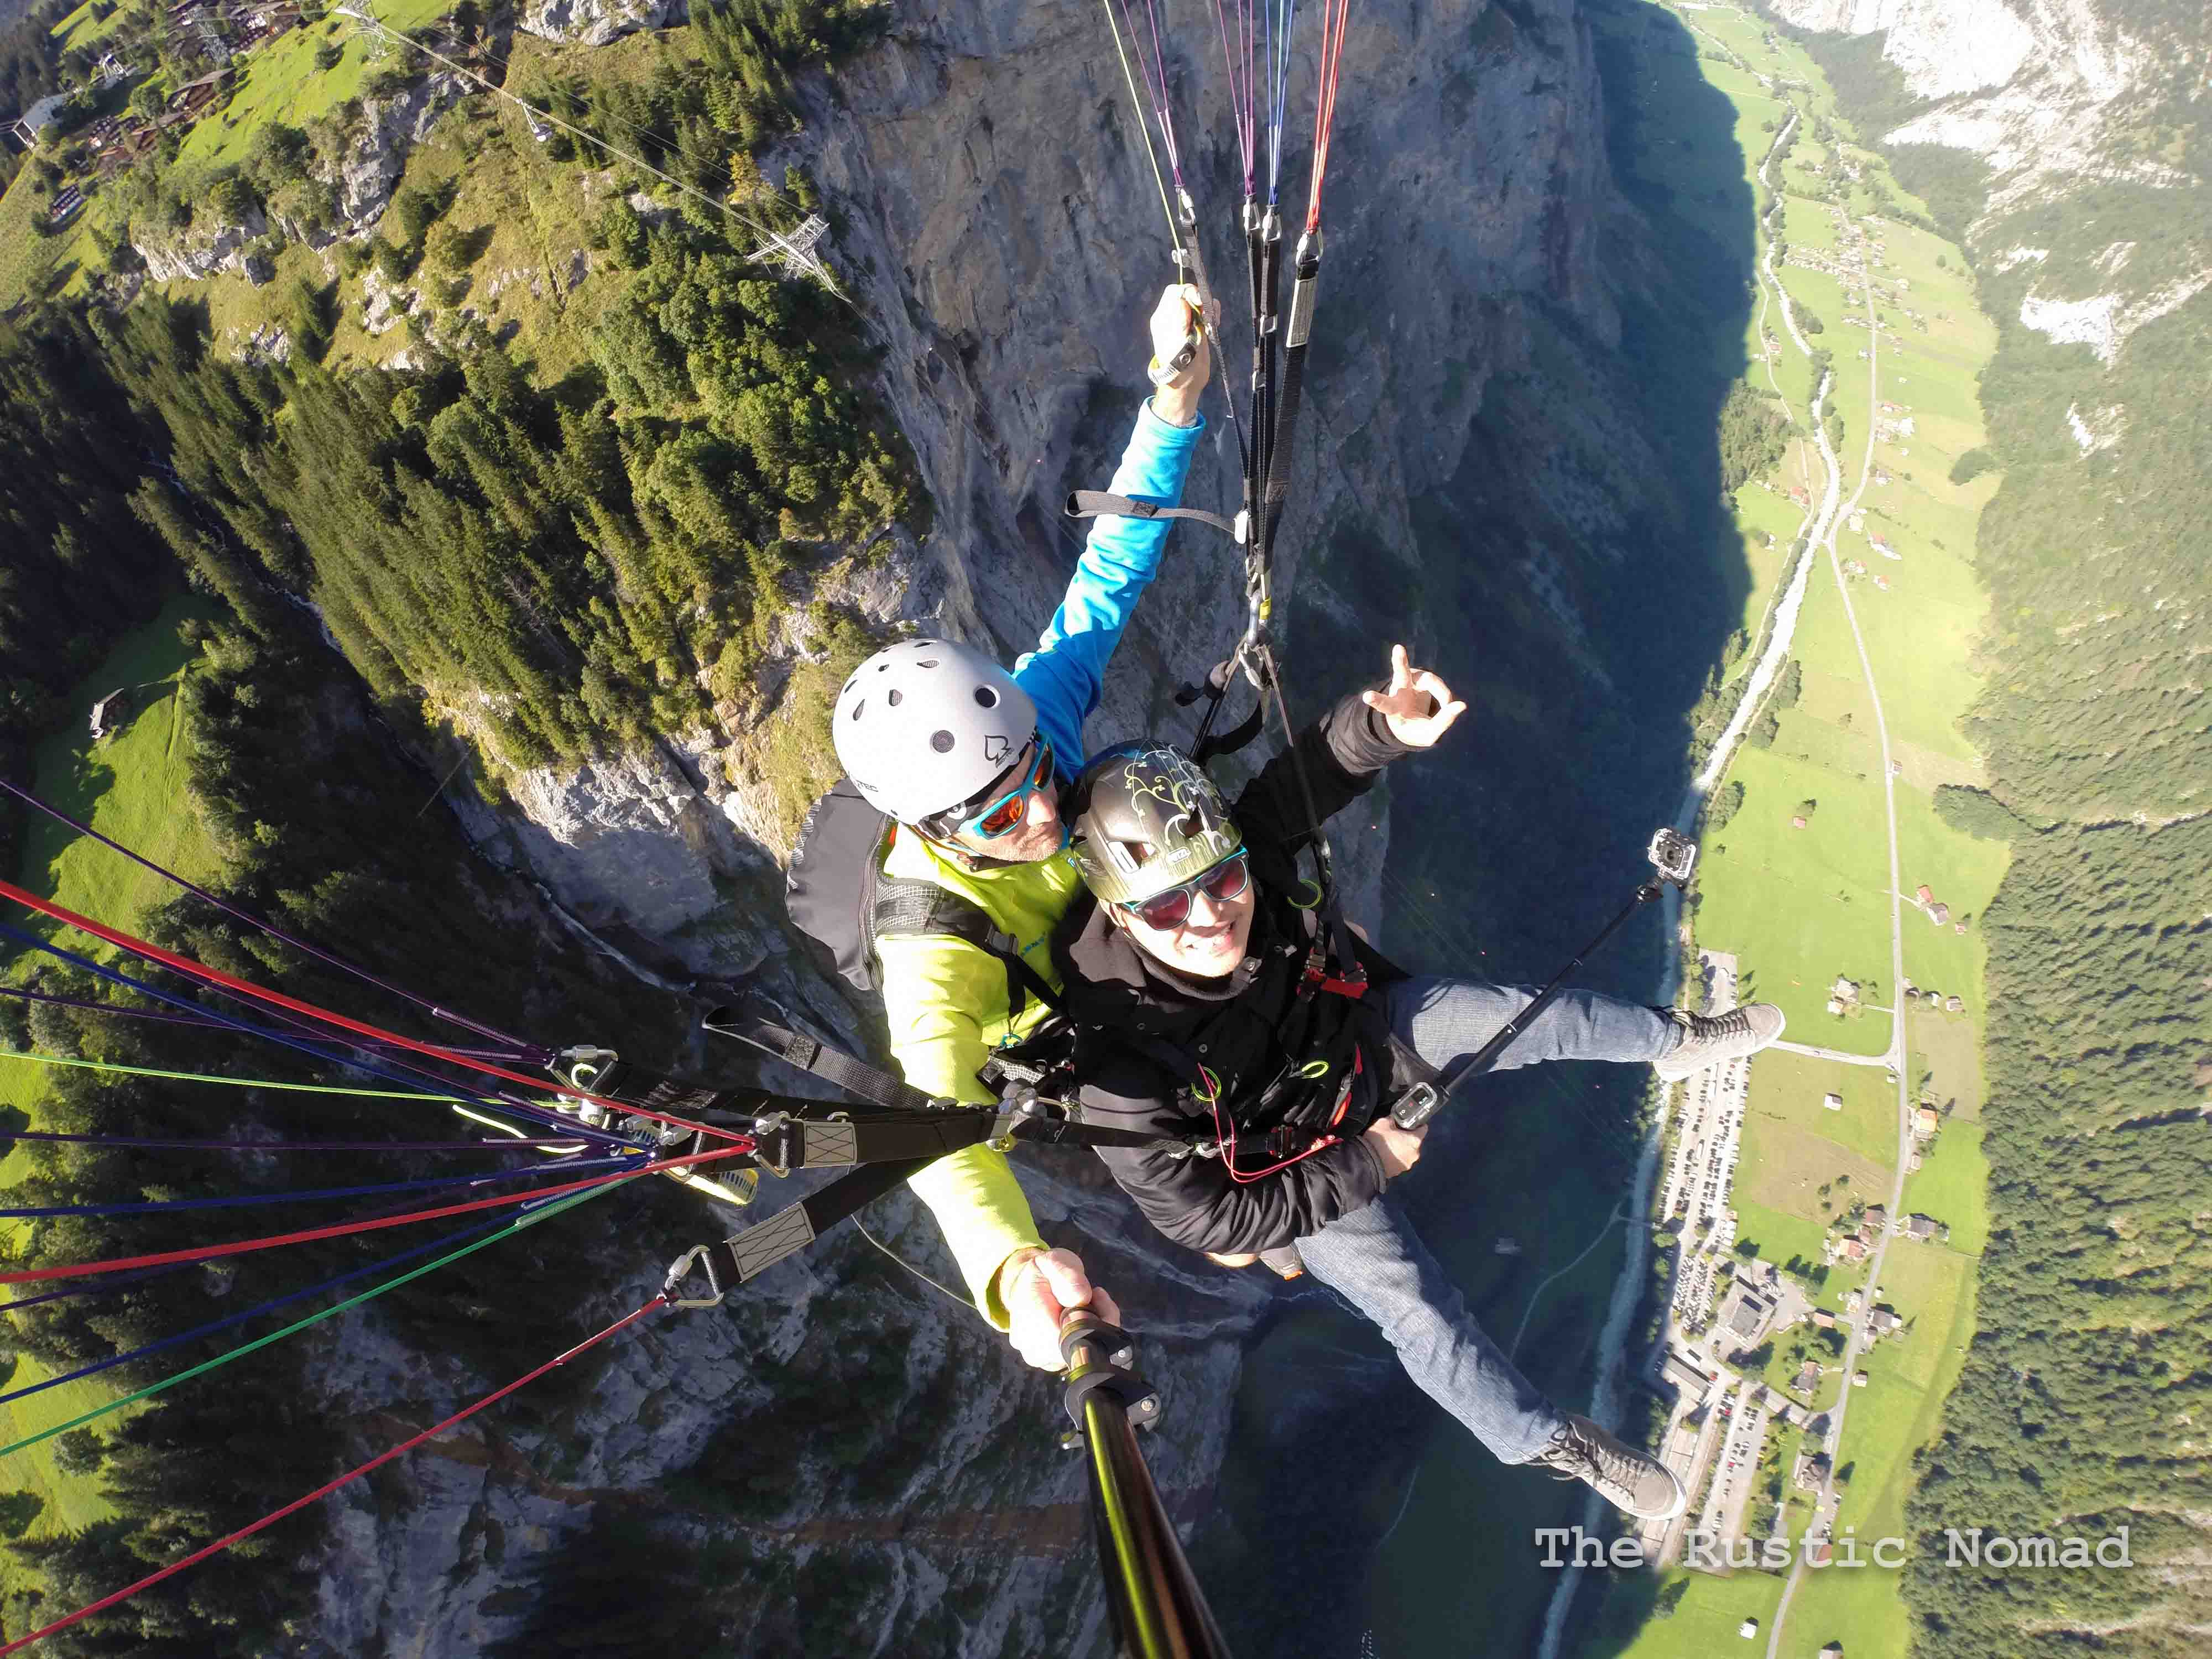 Paragliding in Lauterbrunnen Switzerland - A Taste of the Swiss Alps